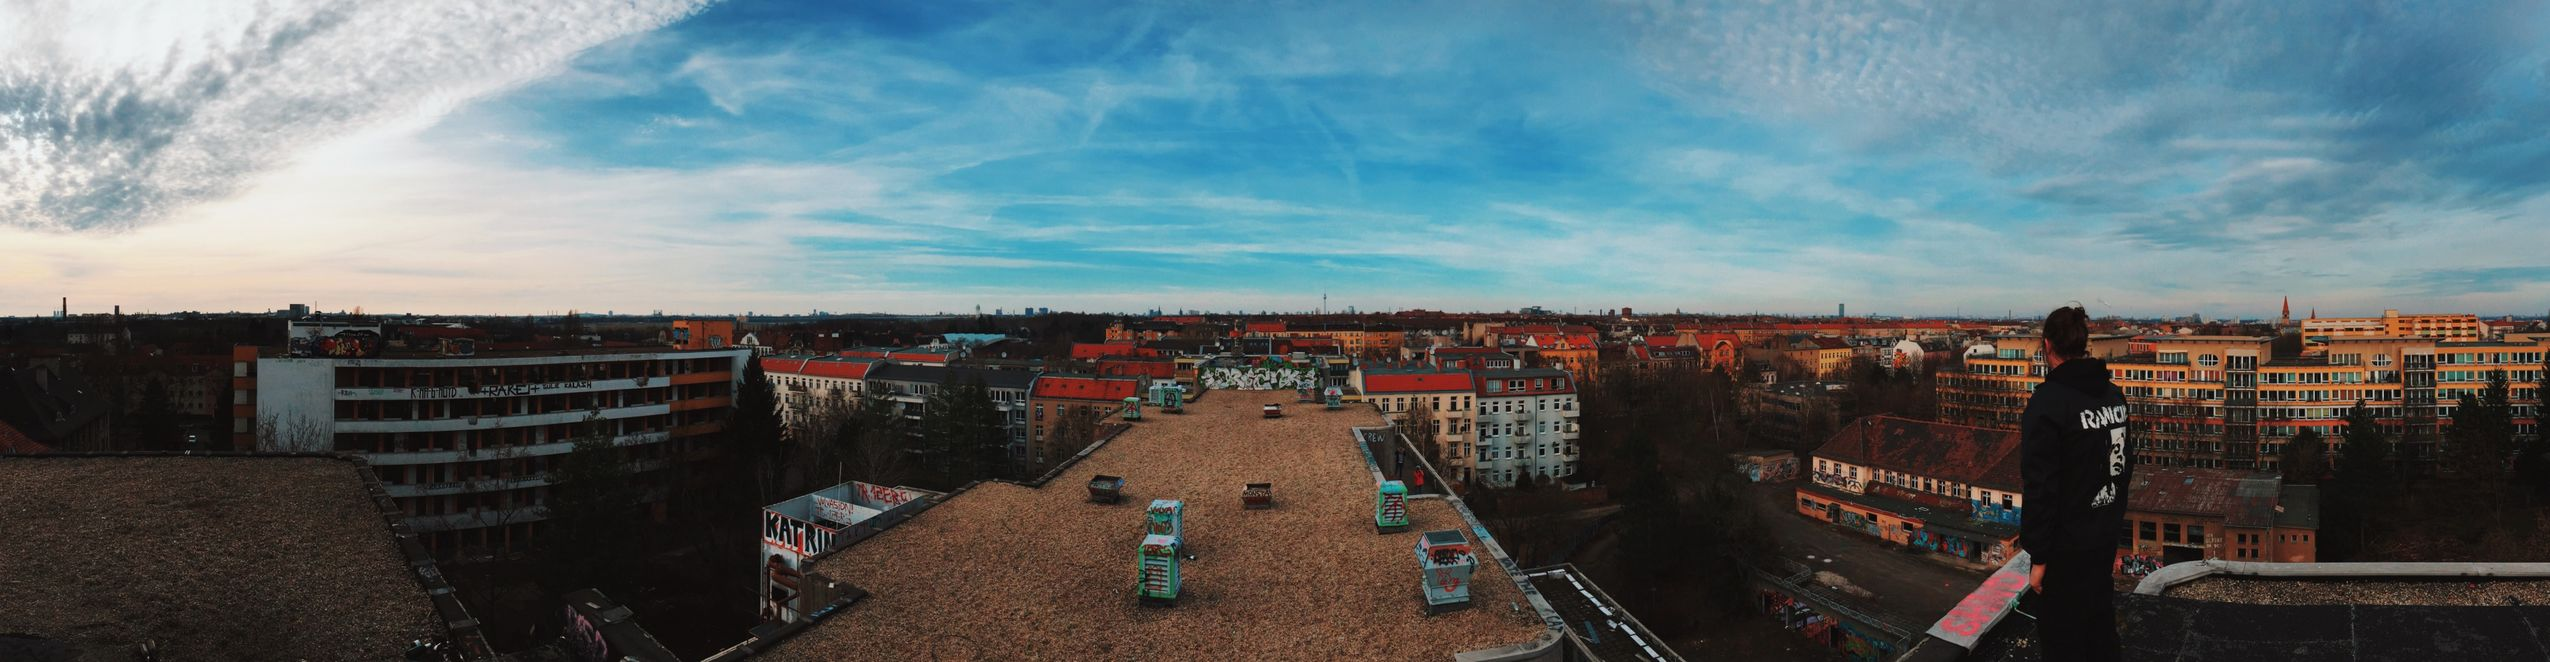 A Panorama from the top of that Abandoned Hospital in Neukölln for Fotostrasse Urbex Urbanexploration